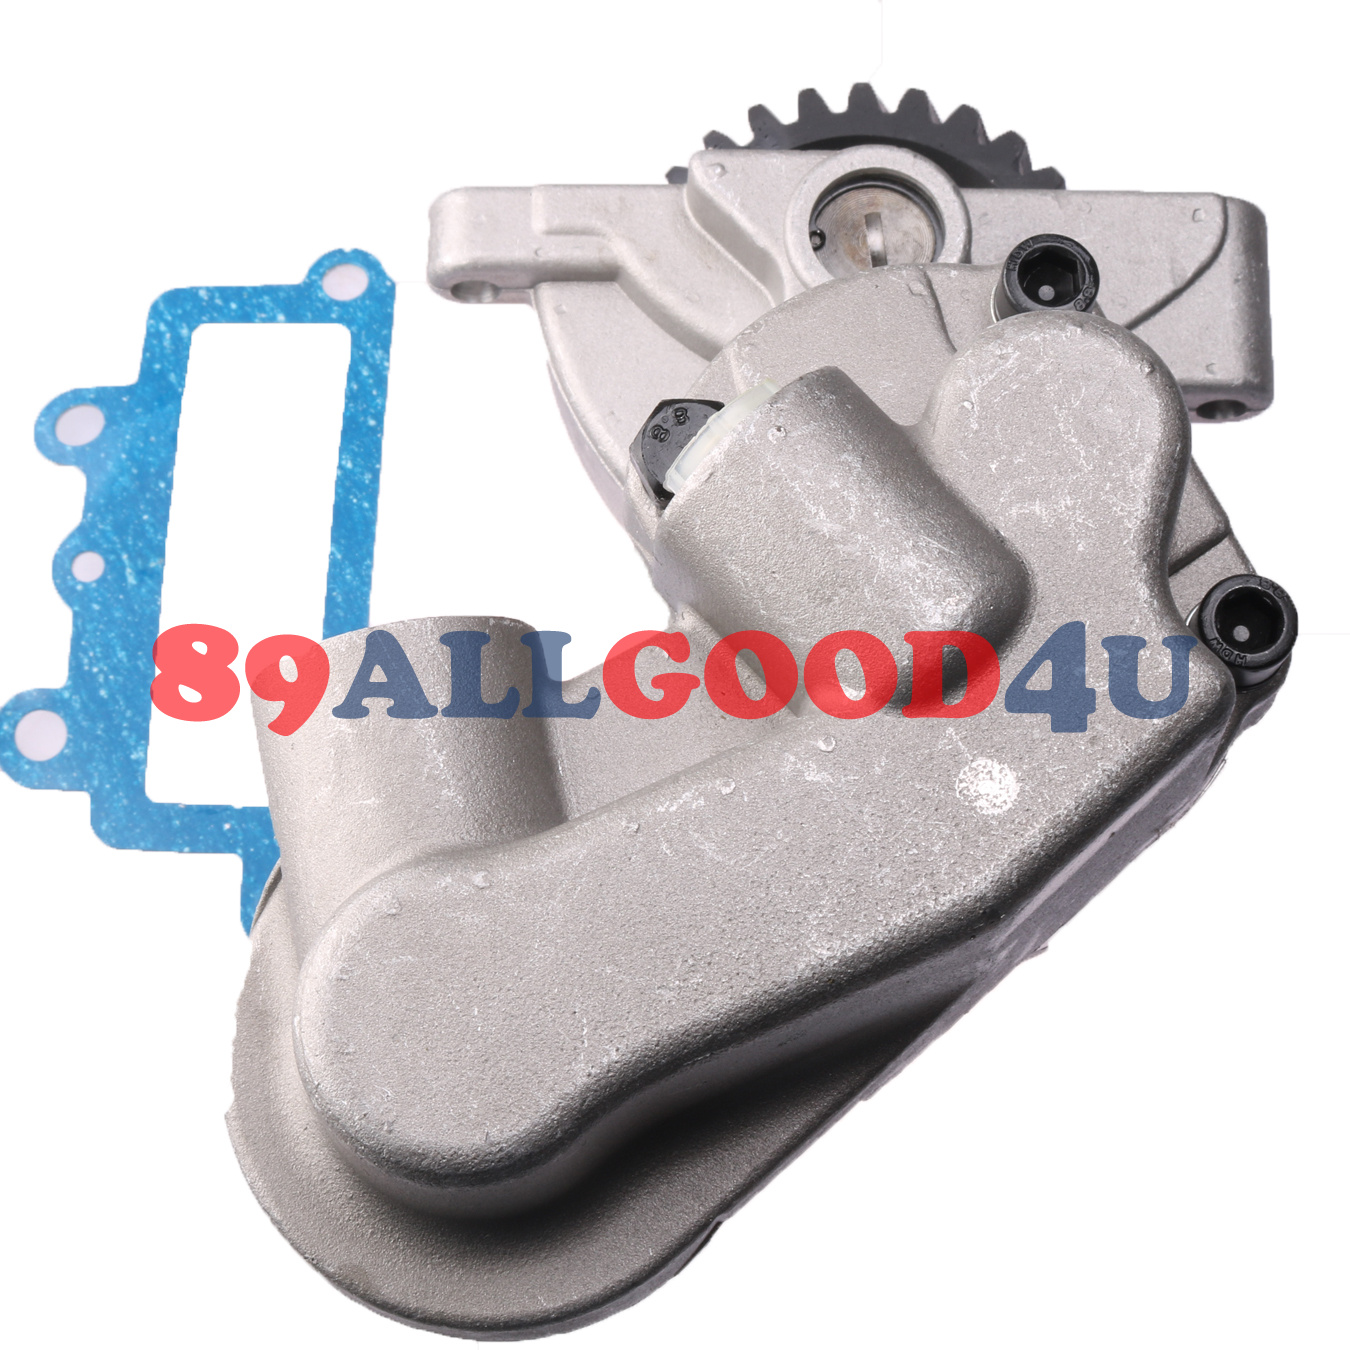 NEW Hydraulic Pump for Ford New Holland Tractor 3000; 3055; 3120; 3150 3300 3310